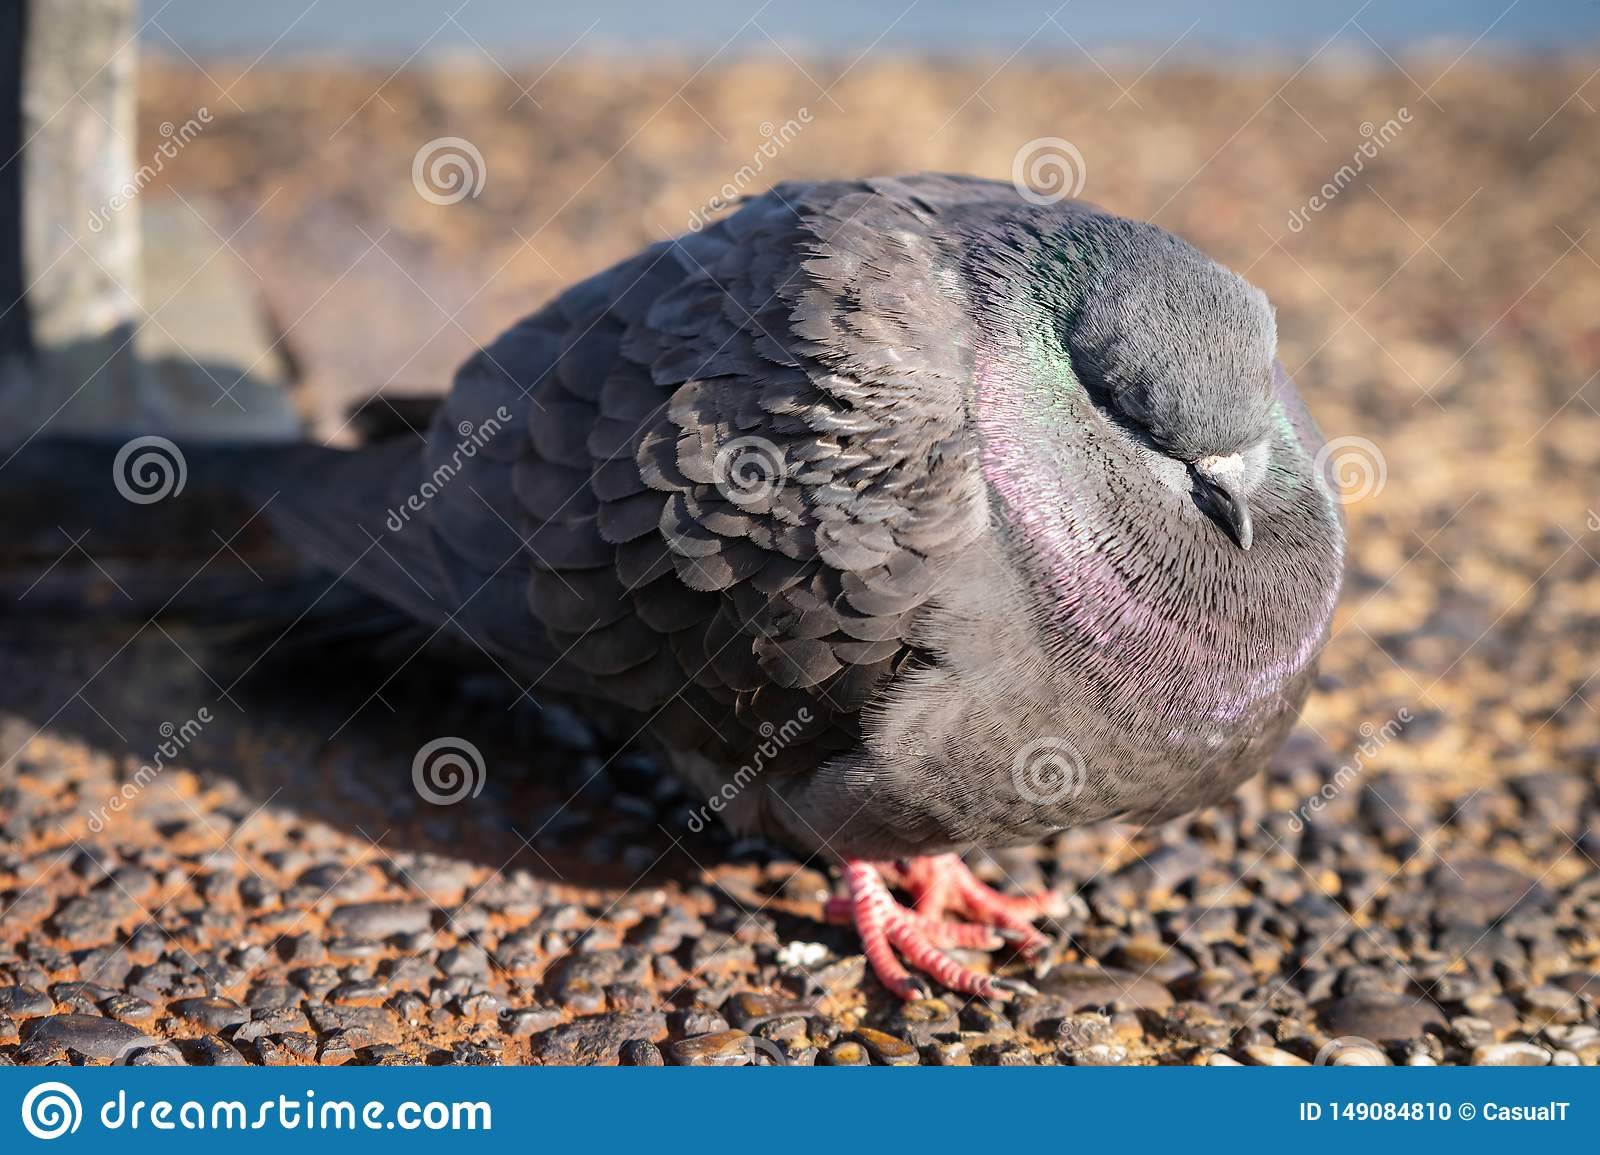 A common rock pidgeon, sleeping on a cold early spring day